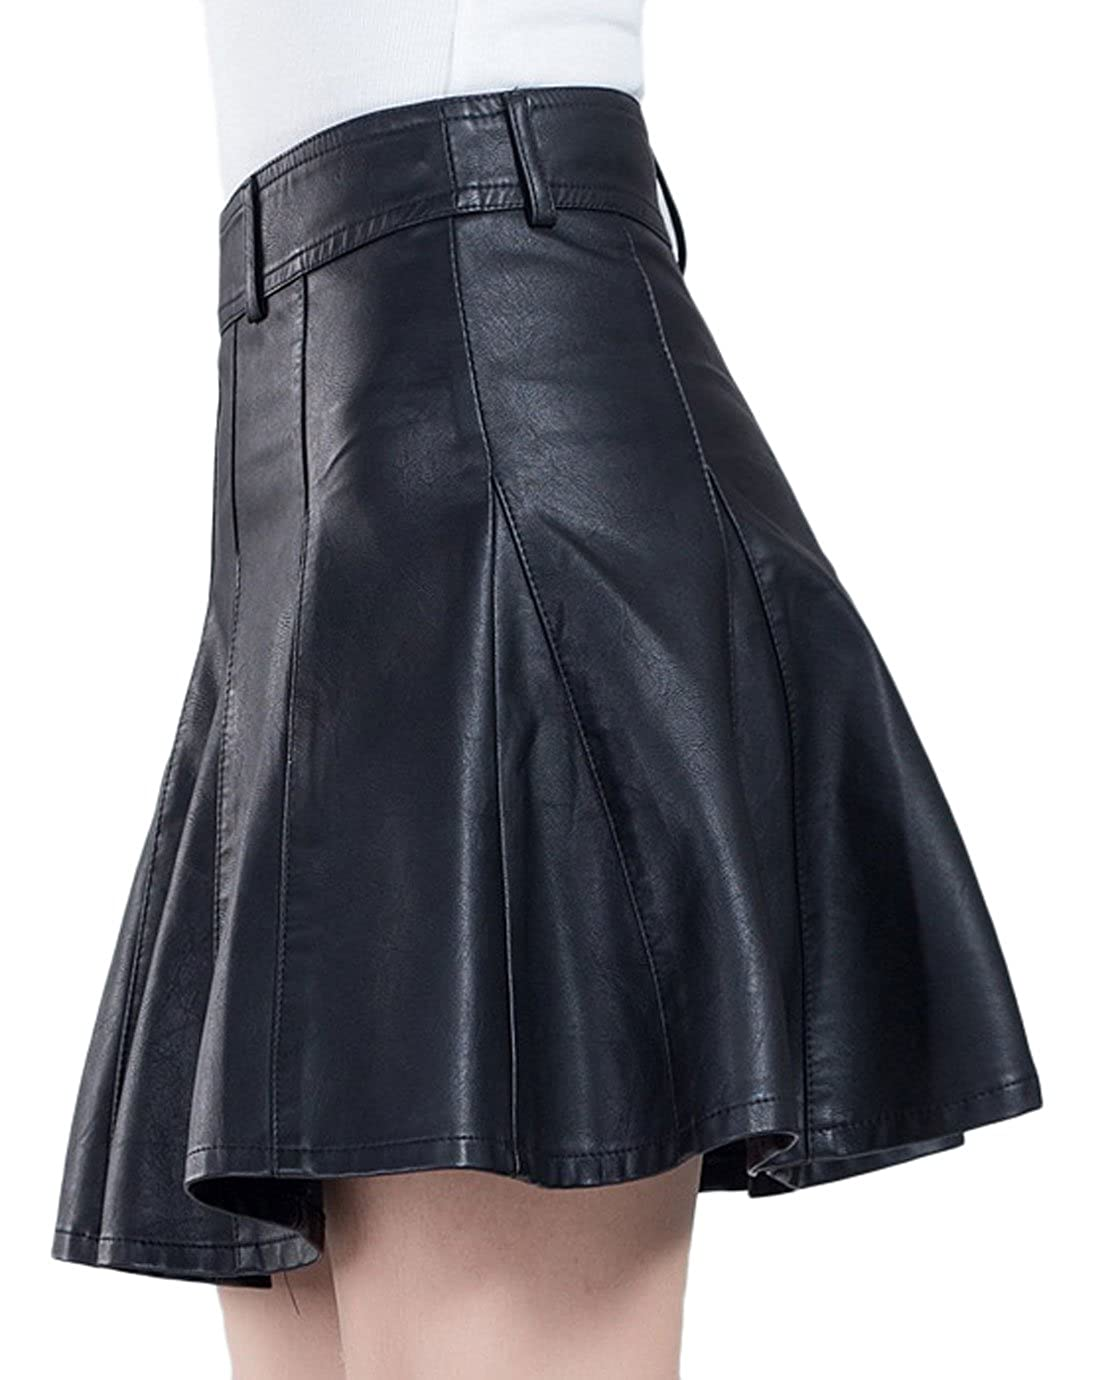 a56dc779b41 chouyatou Women s Casual Side Zipper Flare Pleated Faux Leather Skater  Skirts at Amazon Women s Clothing store